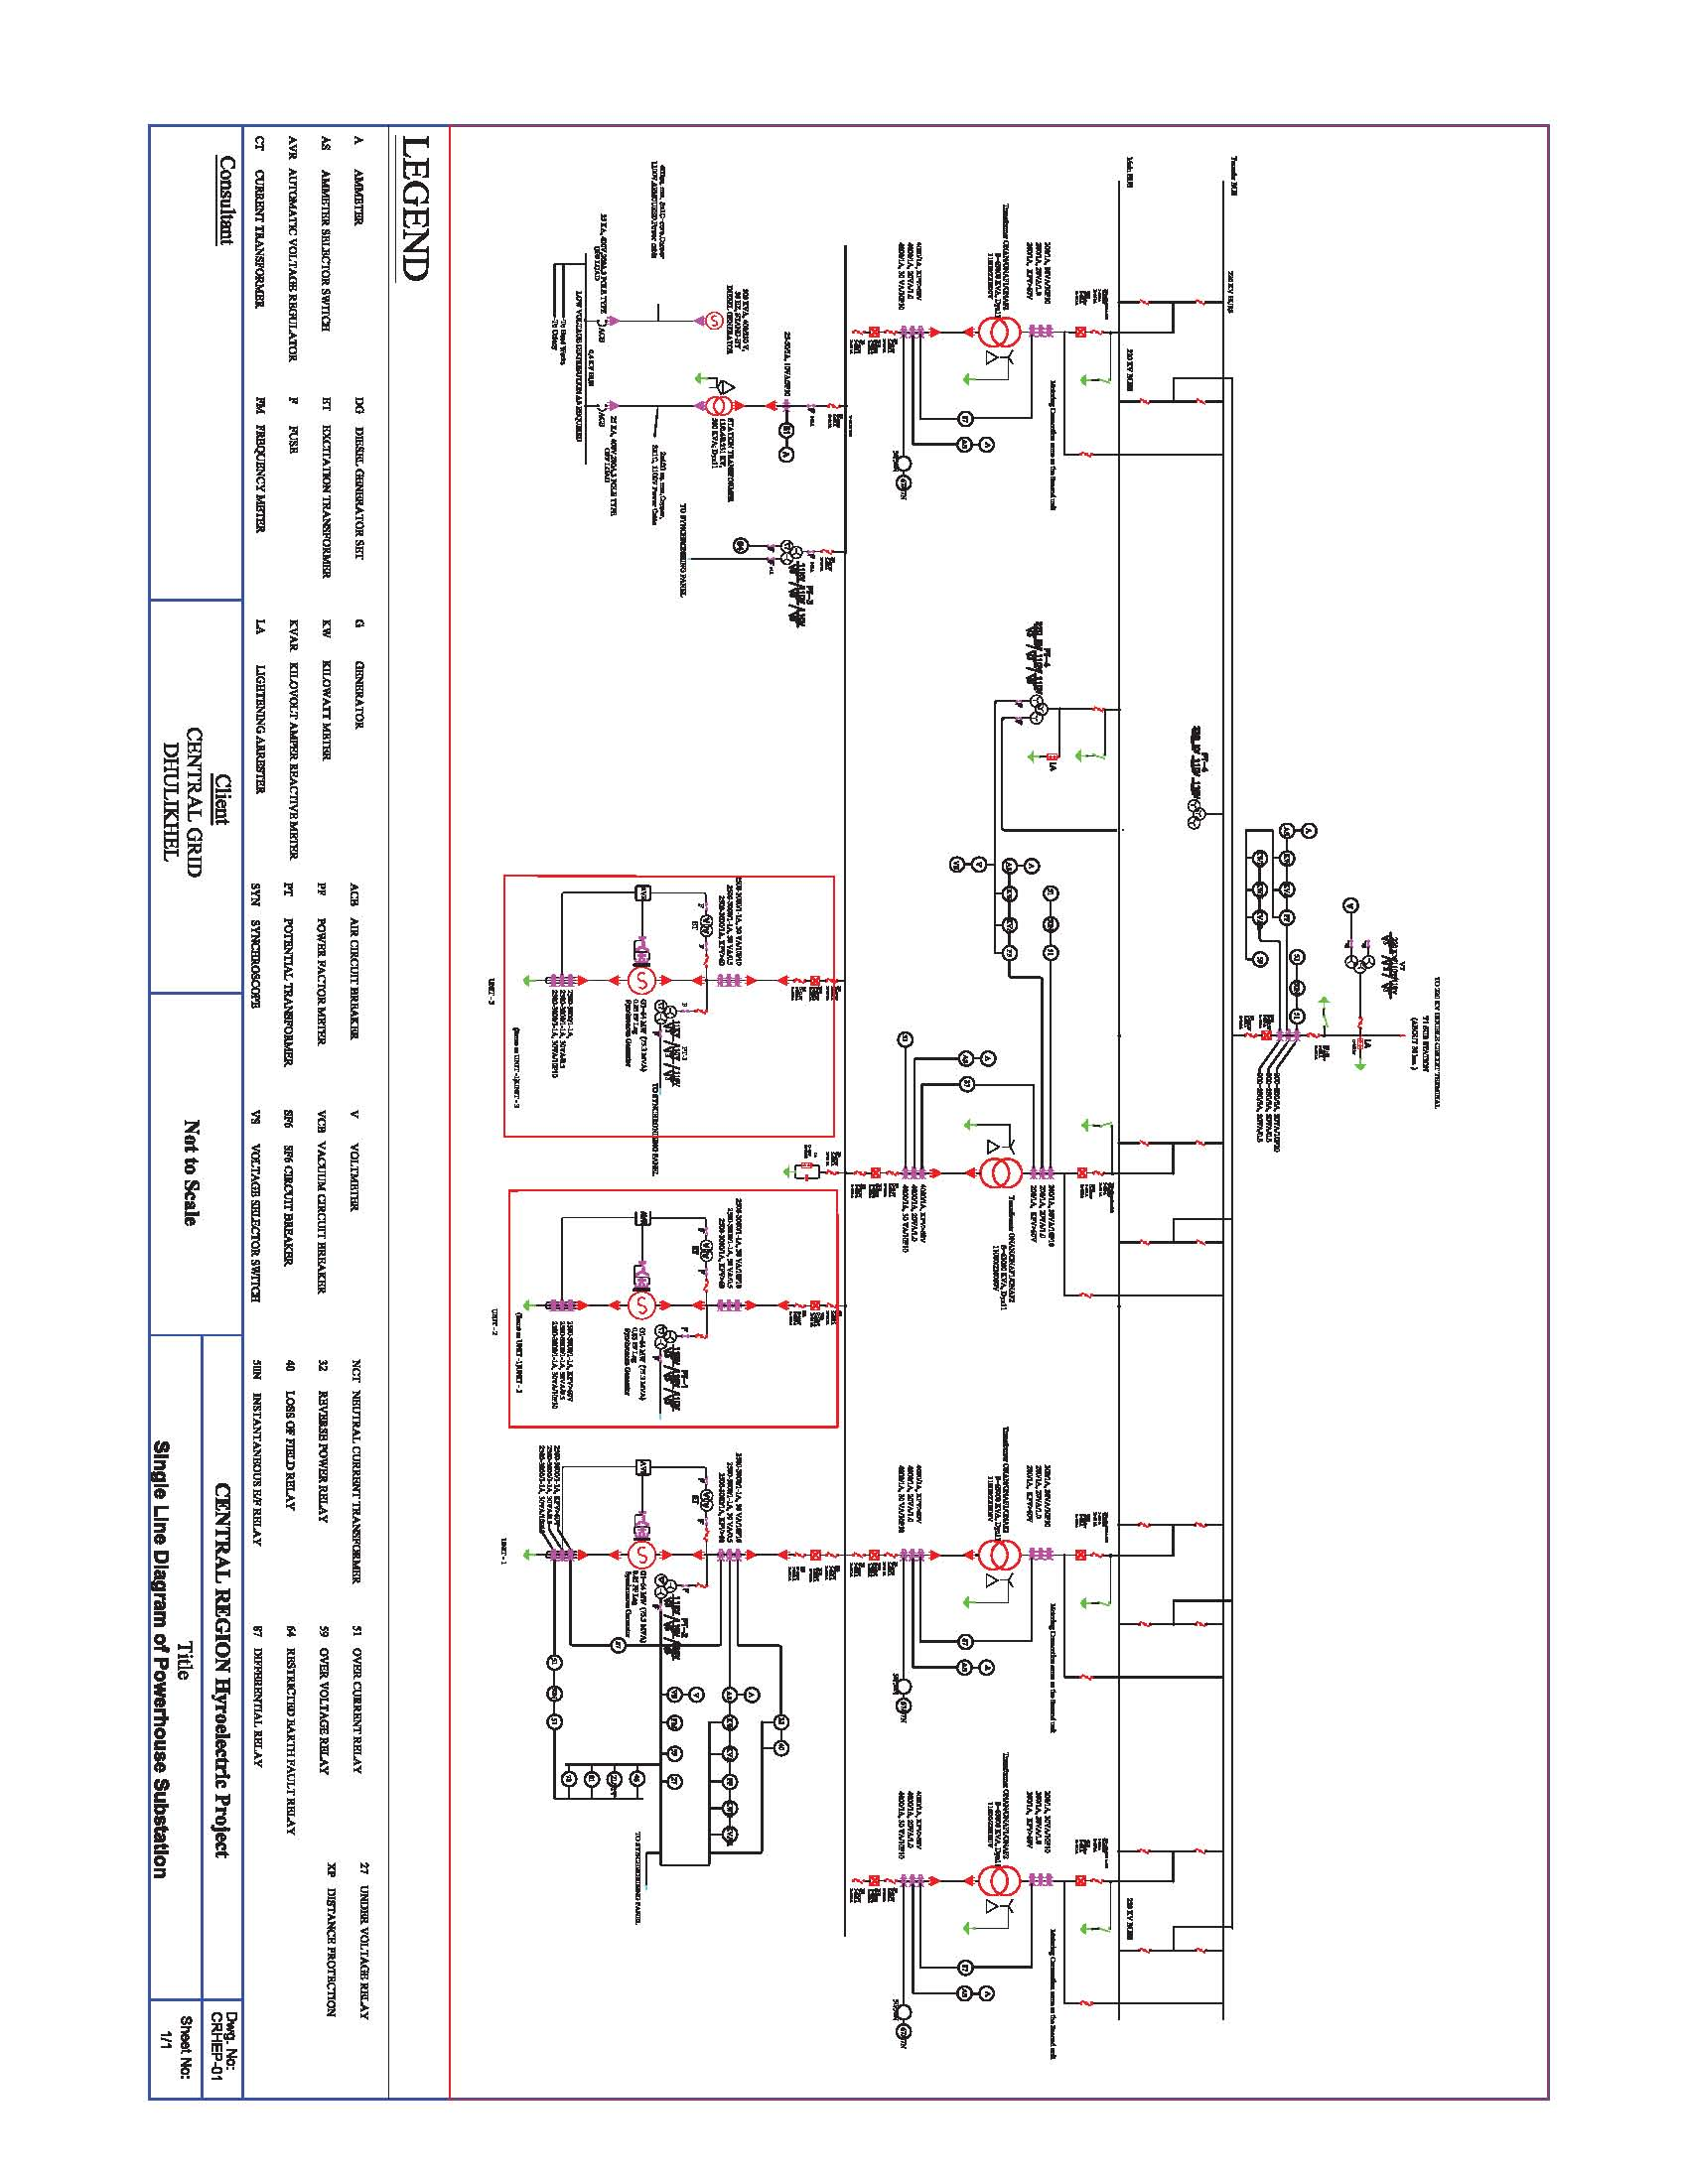 Power Plant Single Line Diagram